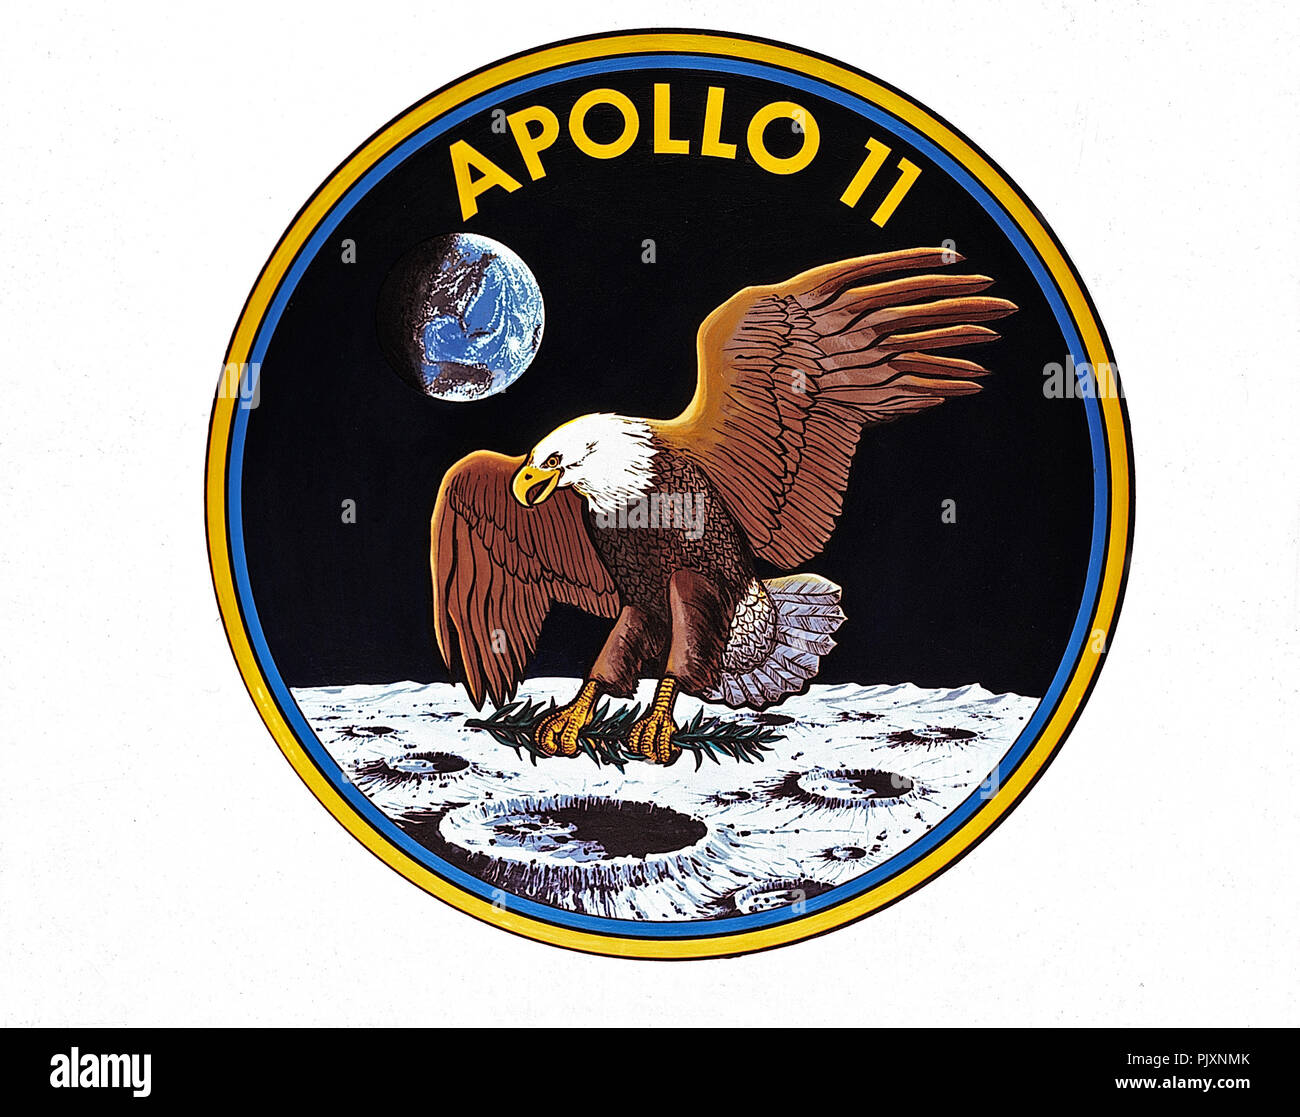 Houston, TX - (FILE) -- The official emblem of Apollo 11, the United States' first scheduled lunar landing mission unveiled on May 1, 1969. The Apollo 11 crew comprised astronauts Neil A. Armstrong, commander; Michael Collins, command module pilot; and Edwin E. Aldrin, Jr., lunar module pilot. It launched from the Kennedy Space Center in Florida on July 16, 1969.  Lunar landing on July 20, 1969. The crew ended on July 24, 1969. The National Aeronautics and Space Administration (NASA) insignia design for Apollo flights is reserved for use by the astronauts and for the official use as the NASA A Stock Photo